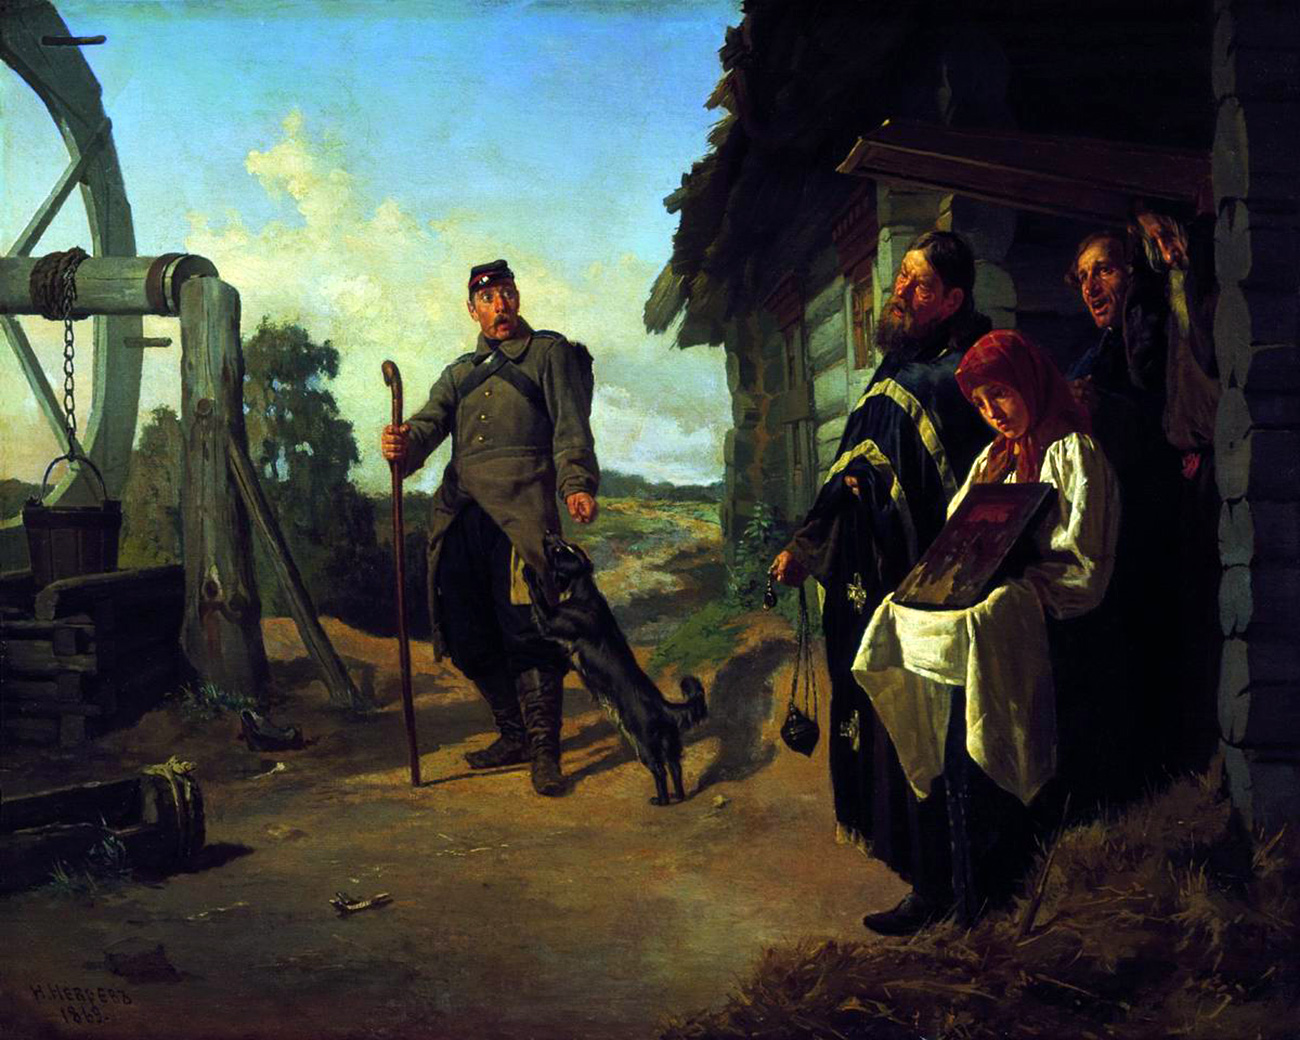 'Return of the soldier home' by Nikolai Nevrev, 1869. / Source: Dnipropetrovsk Art Museum